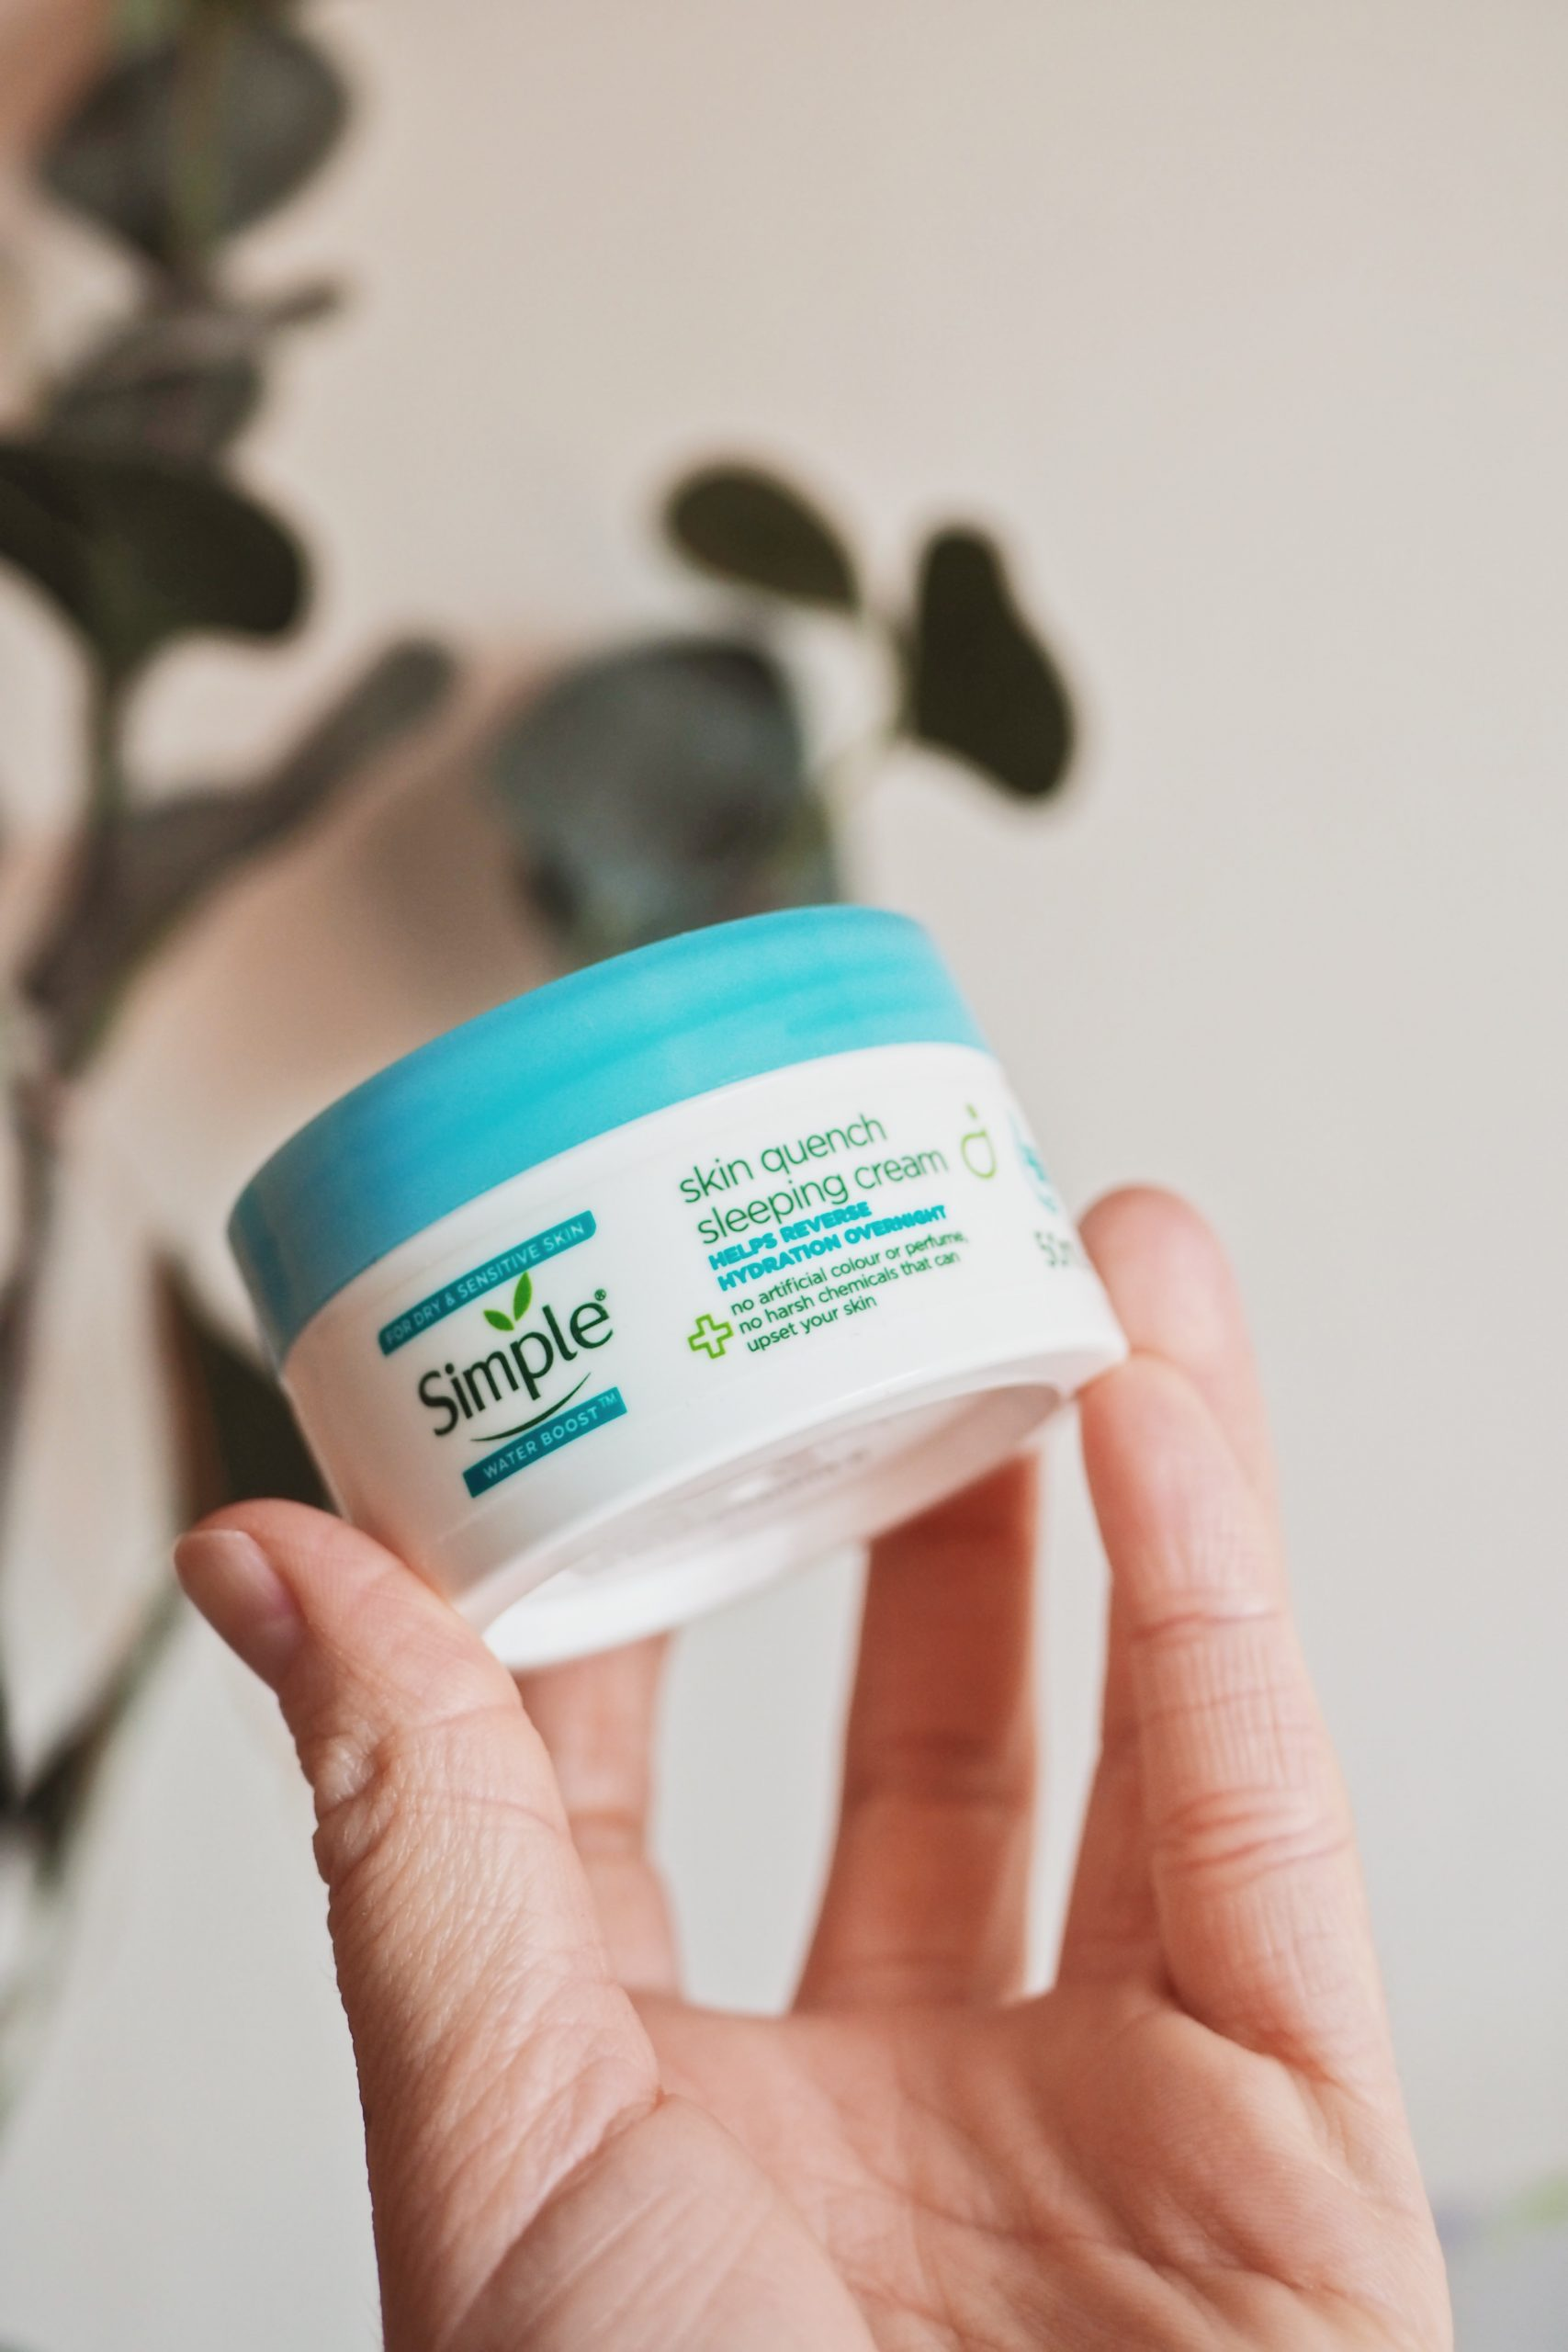 Simple Water Boost Skin Quench Sleeping Cream, Review, Simple Night Cream, Skincare,